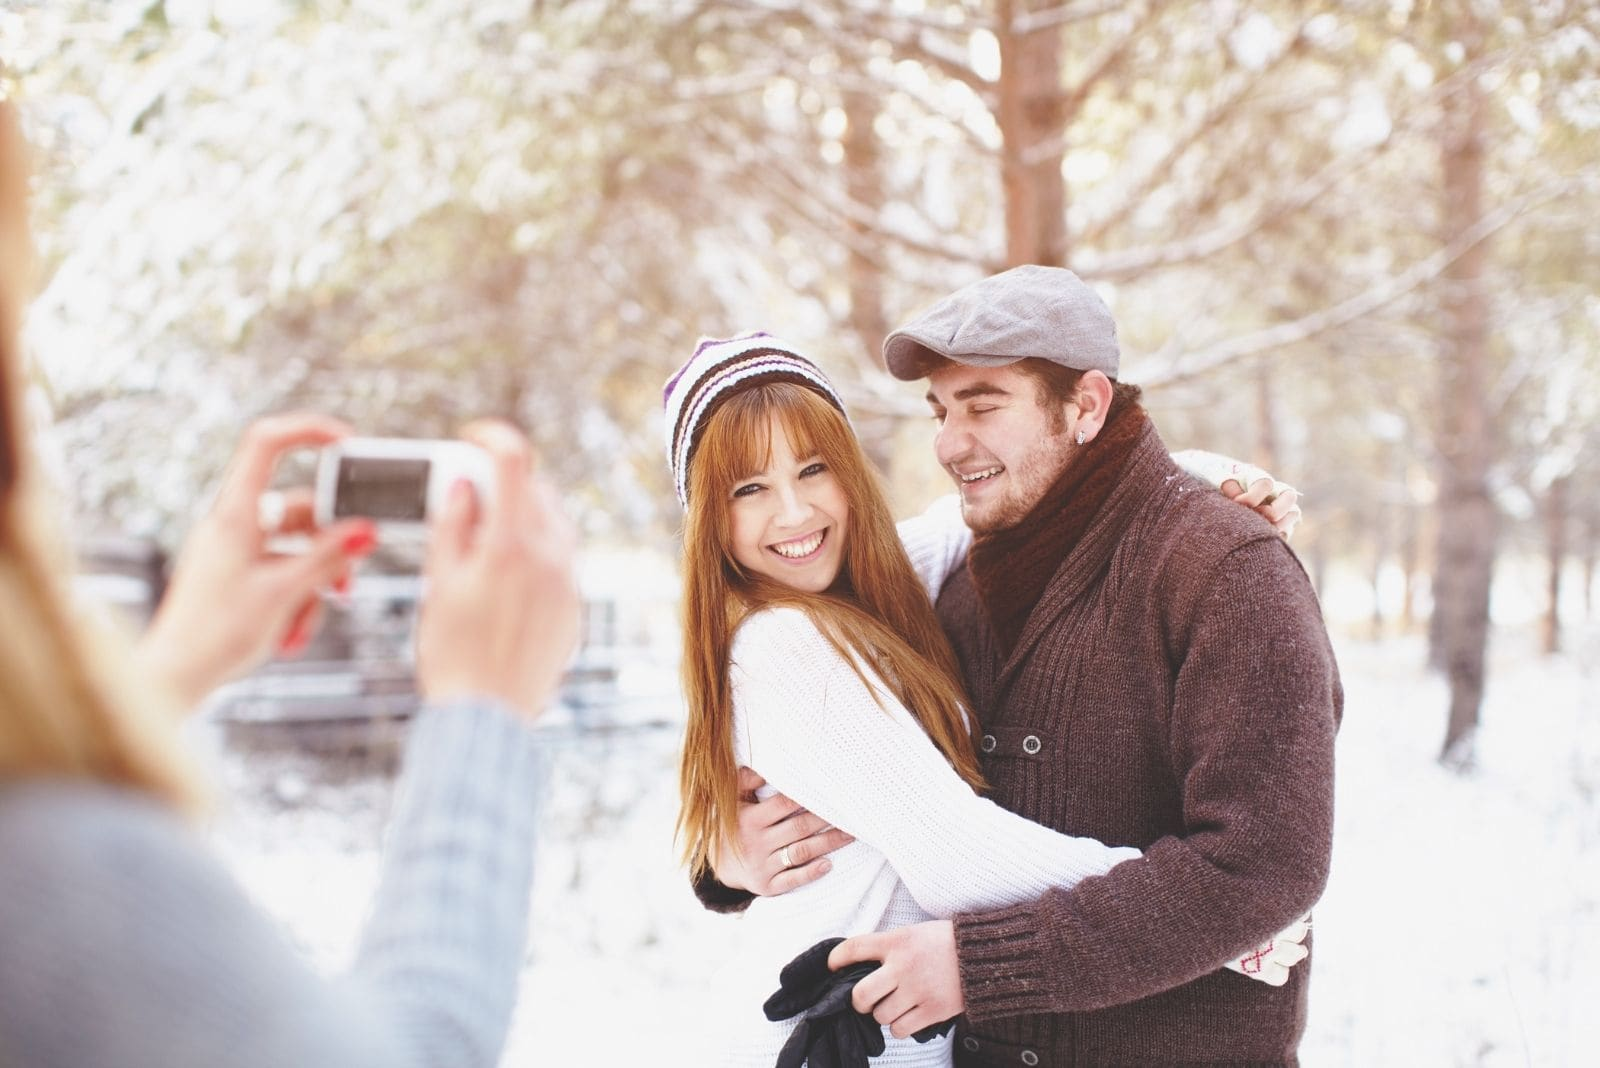 woman taking a picture of a sweet couple in the winter park